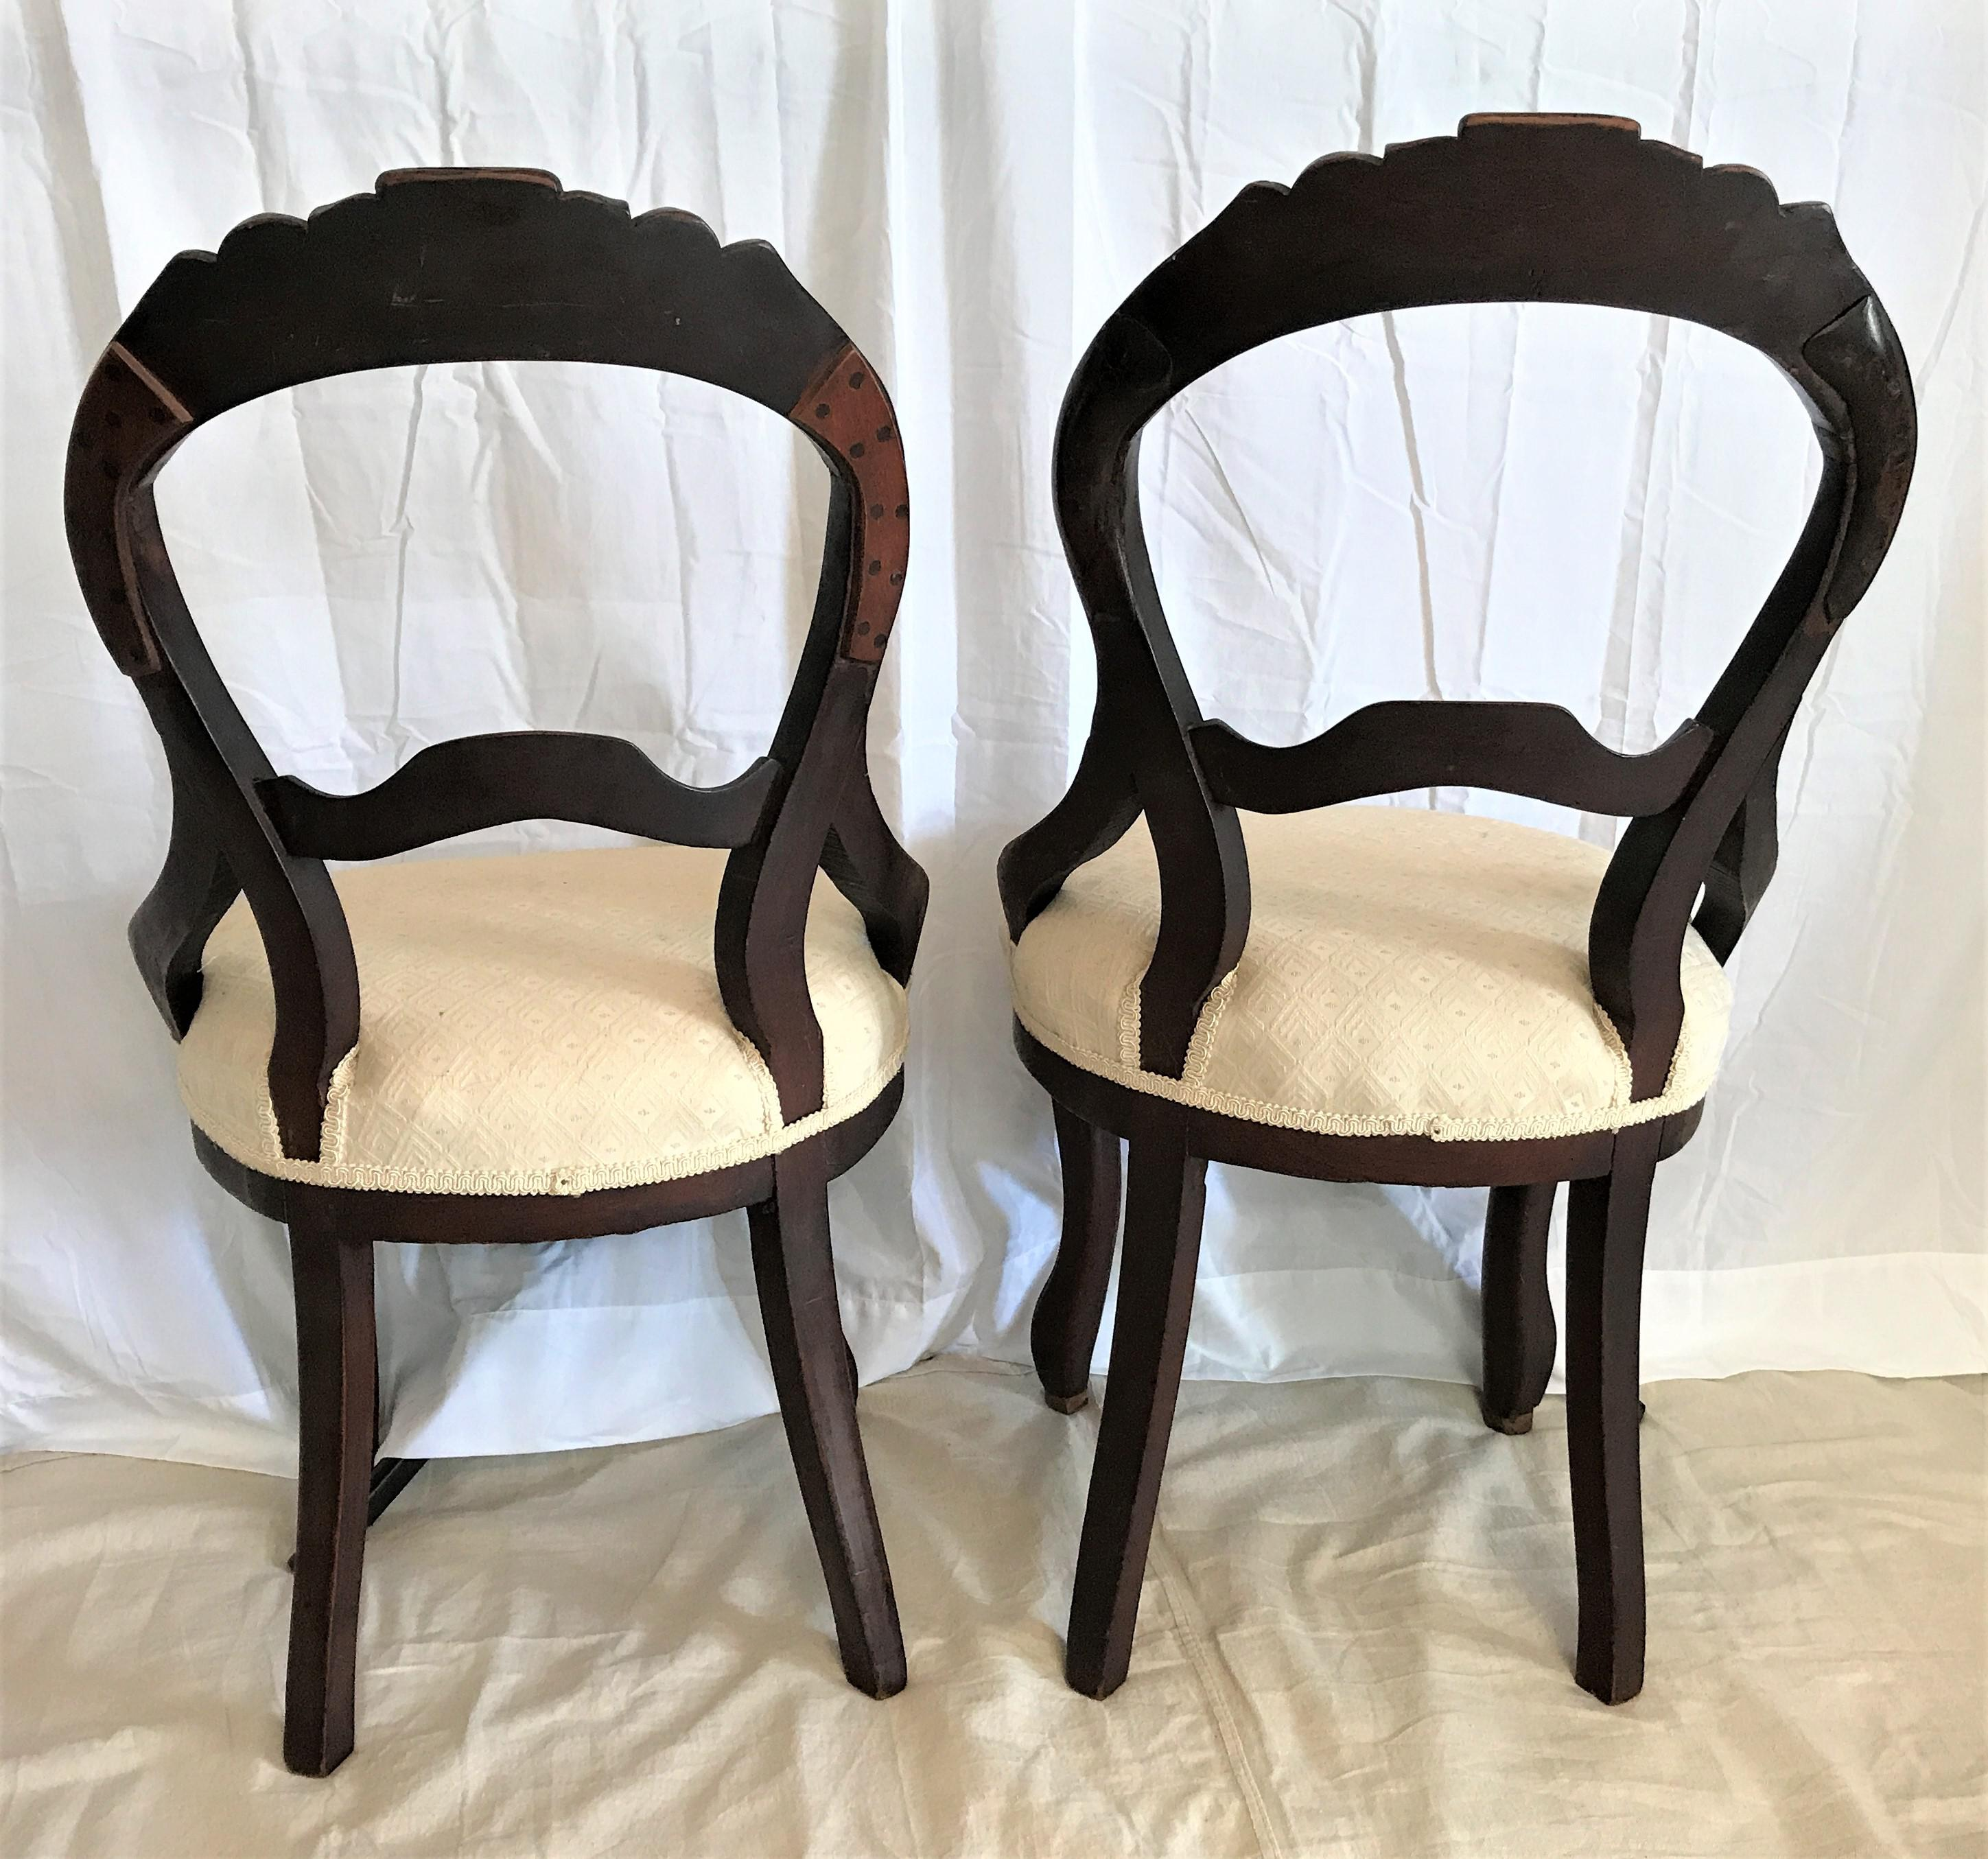 Merveilleux Louis XV Style Balloon Back Chairs Ca. 1850   A Pair   Image 5 Of